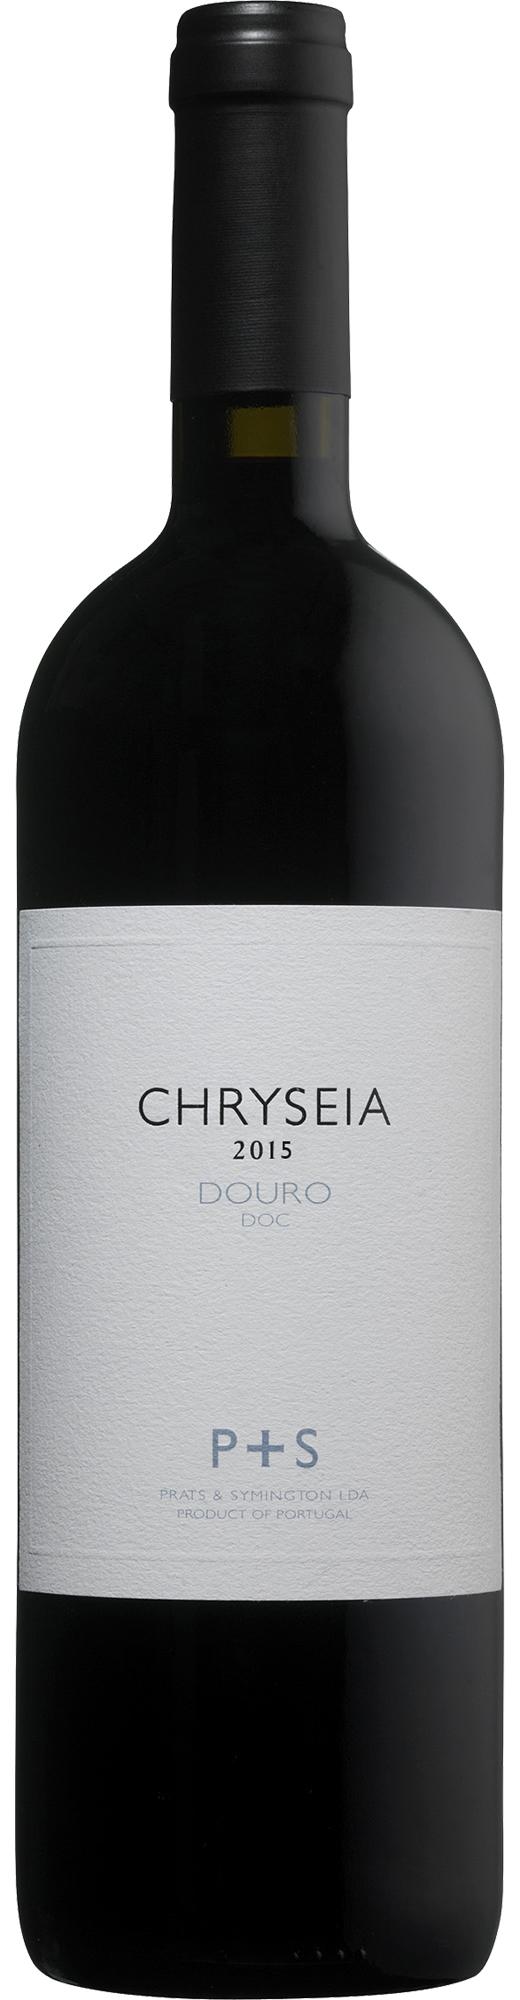 Product Image for P&S CHRYSEIA DOURO RED 2016 - MAGNUM